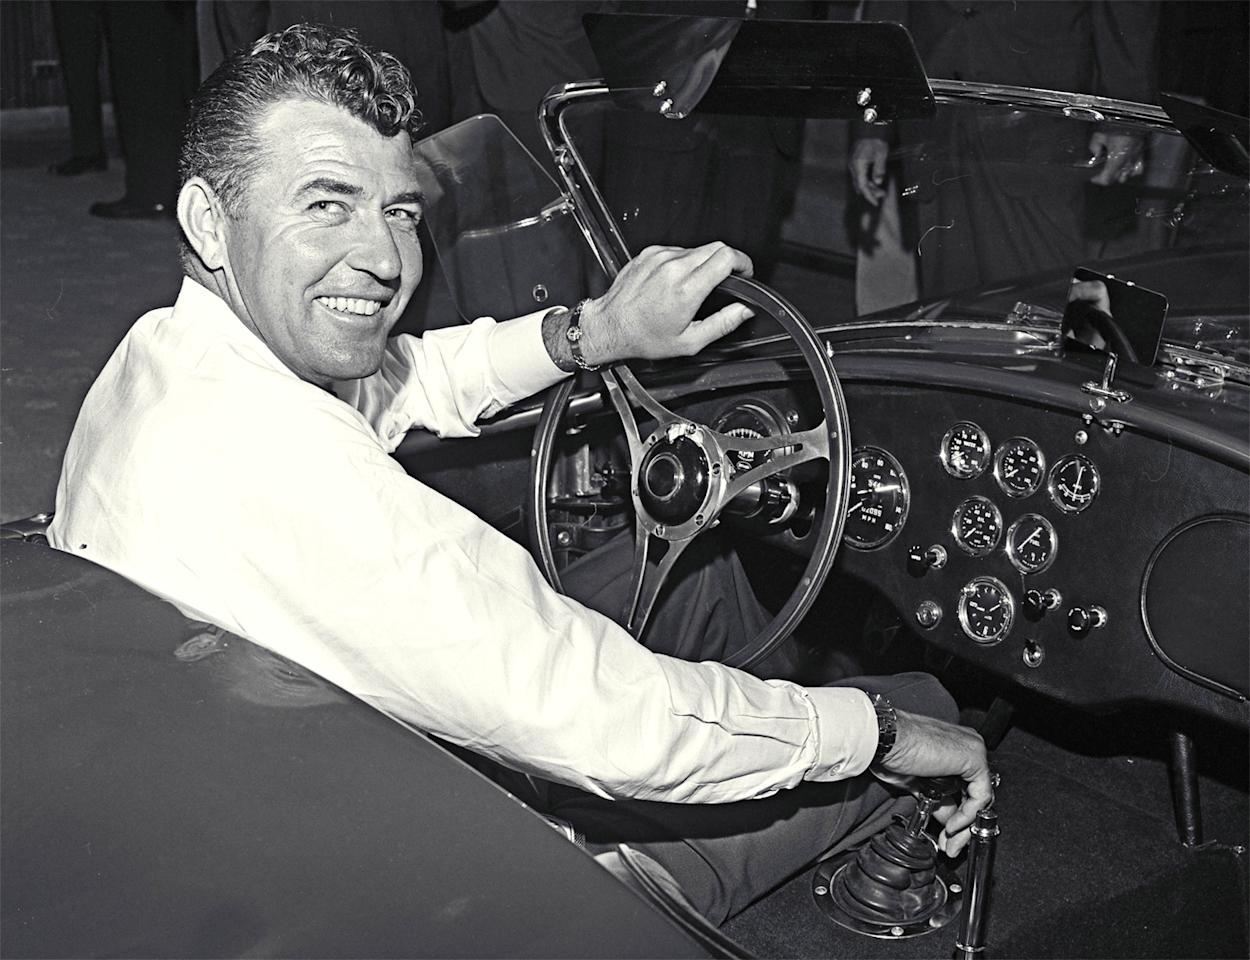 Cobra publicity photo, Venice, CA, 1963. Carroll Shelby at the wheel of a new Cobra production car.